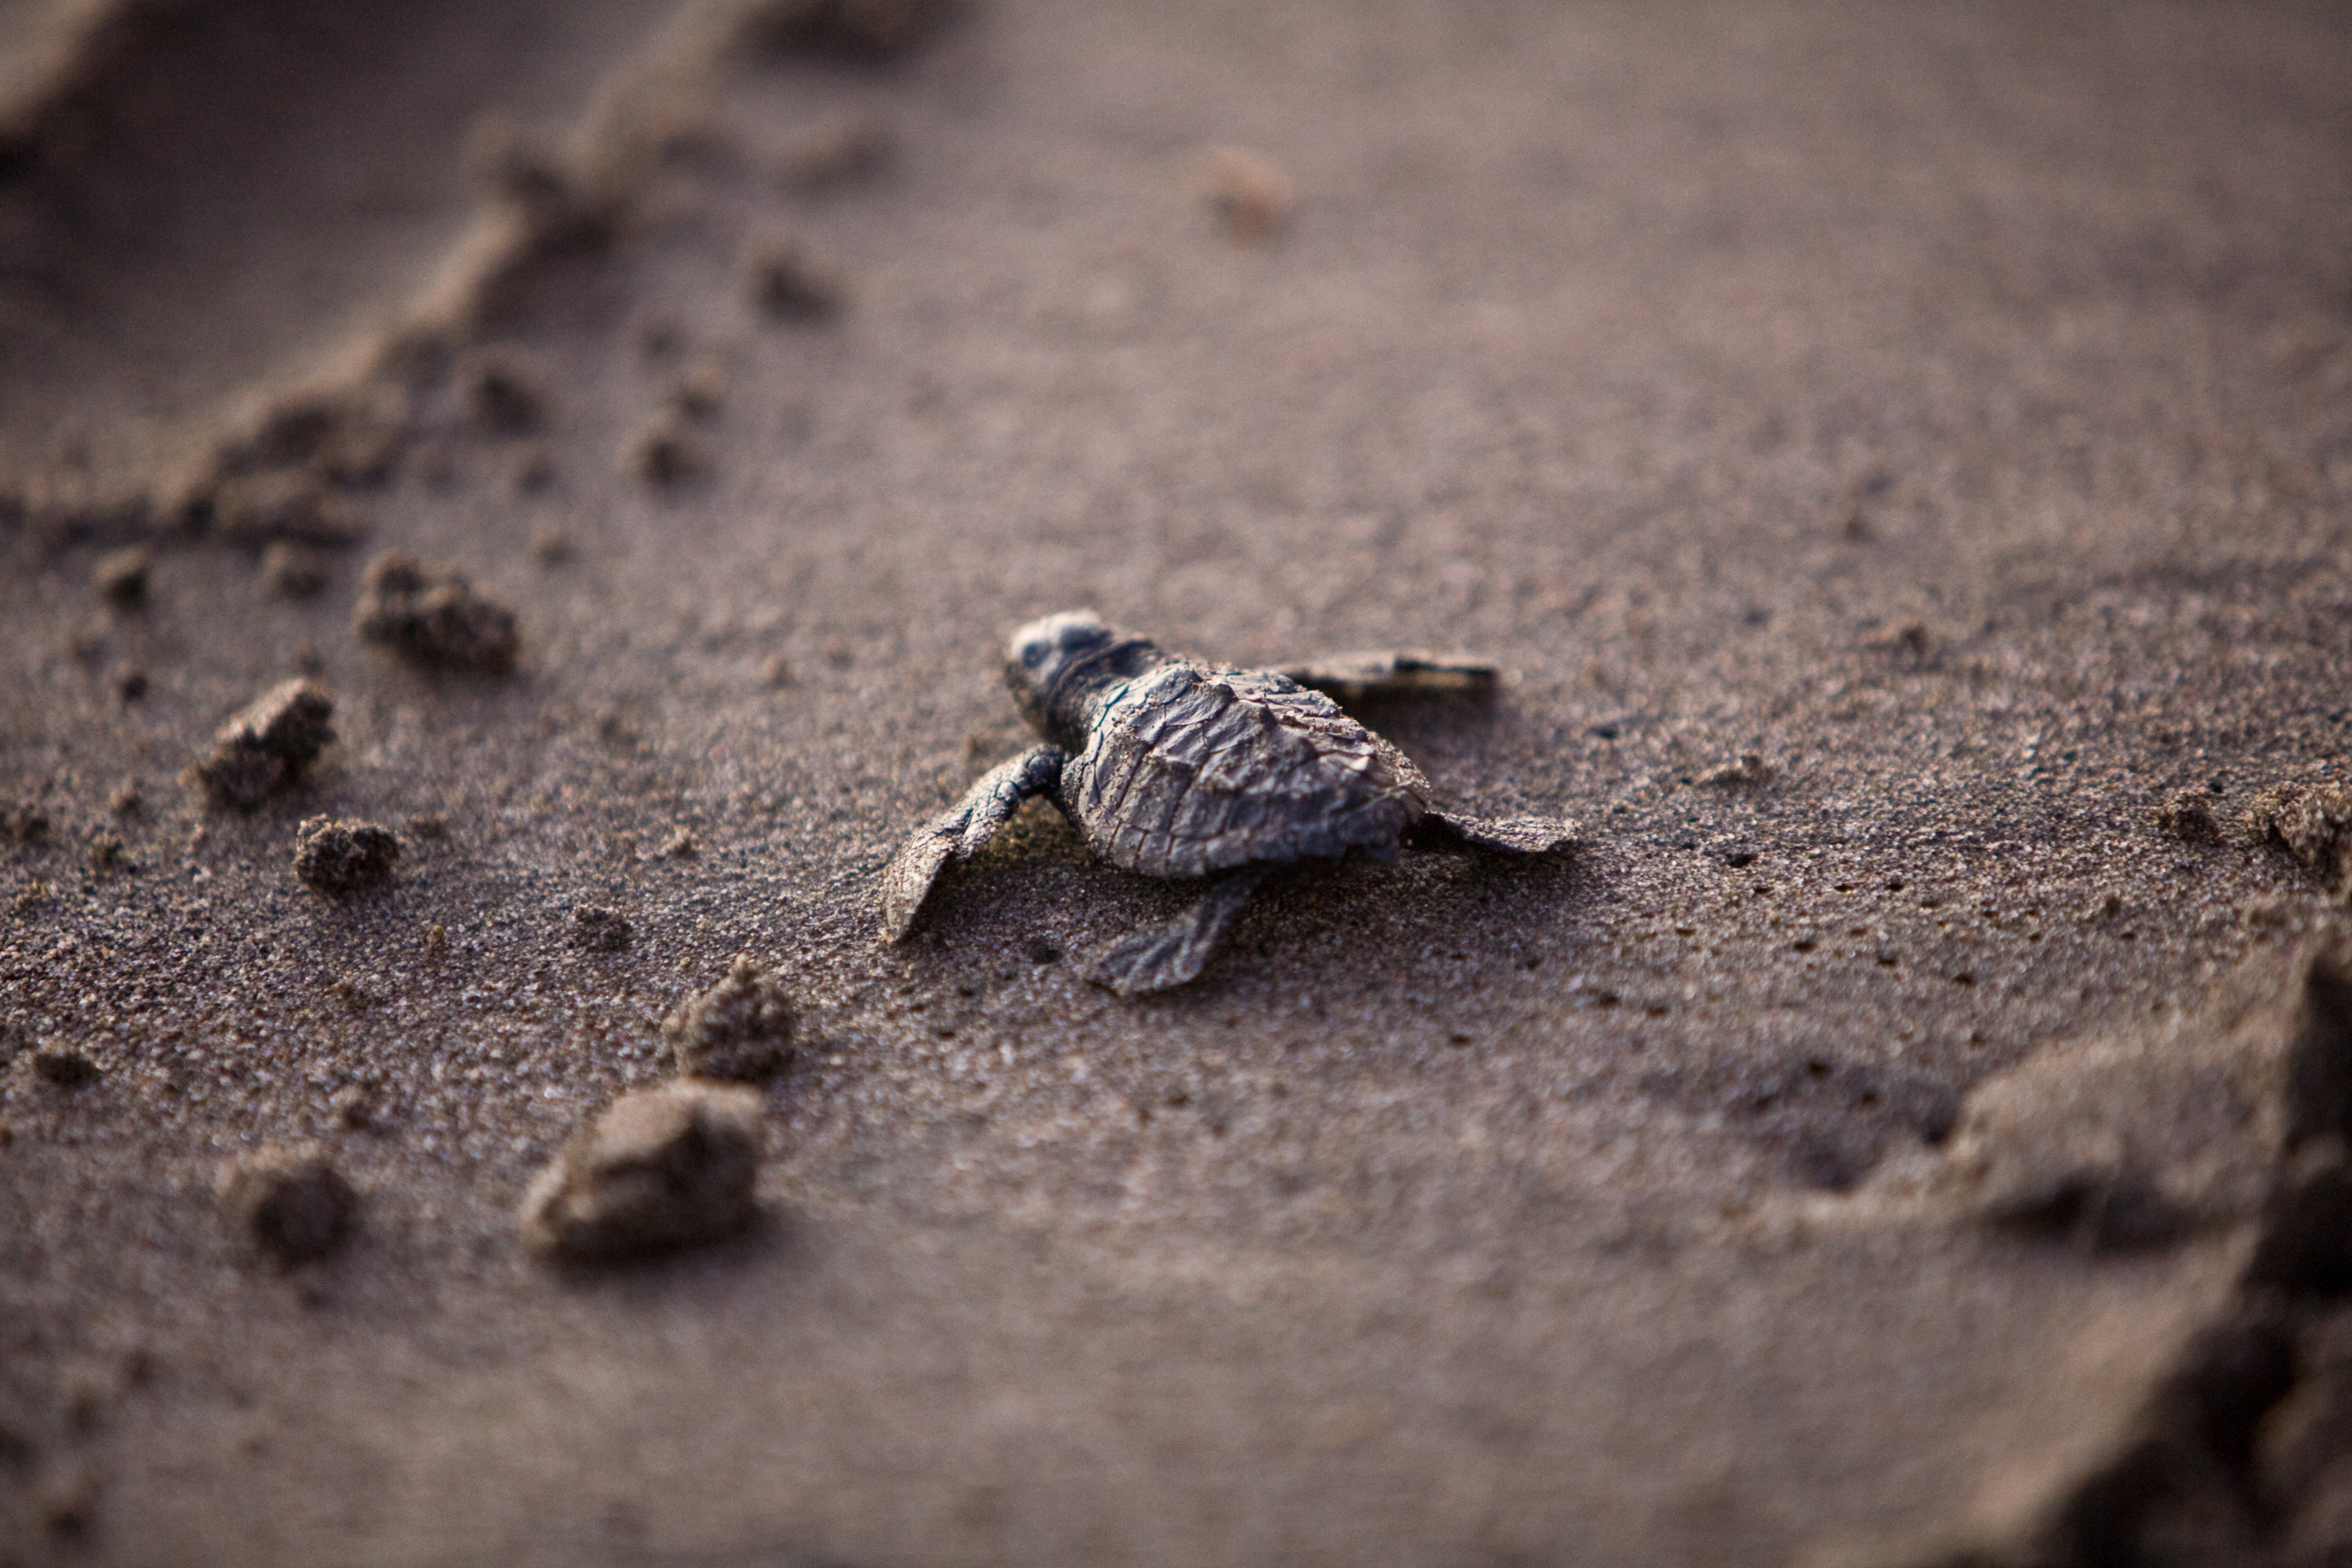 Baby Turtles Are Cool - photo#19